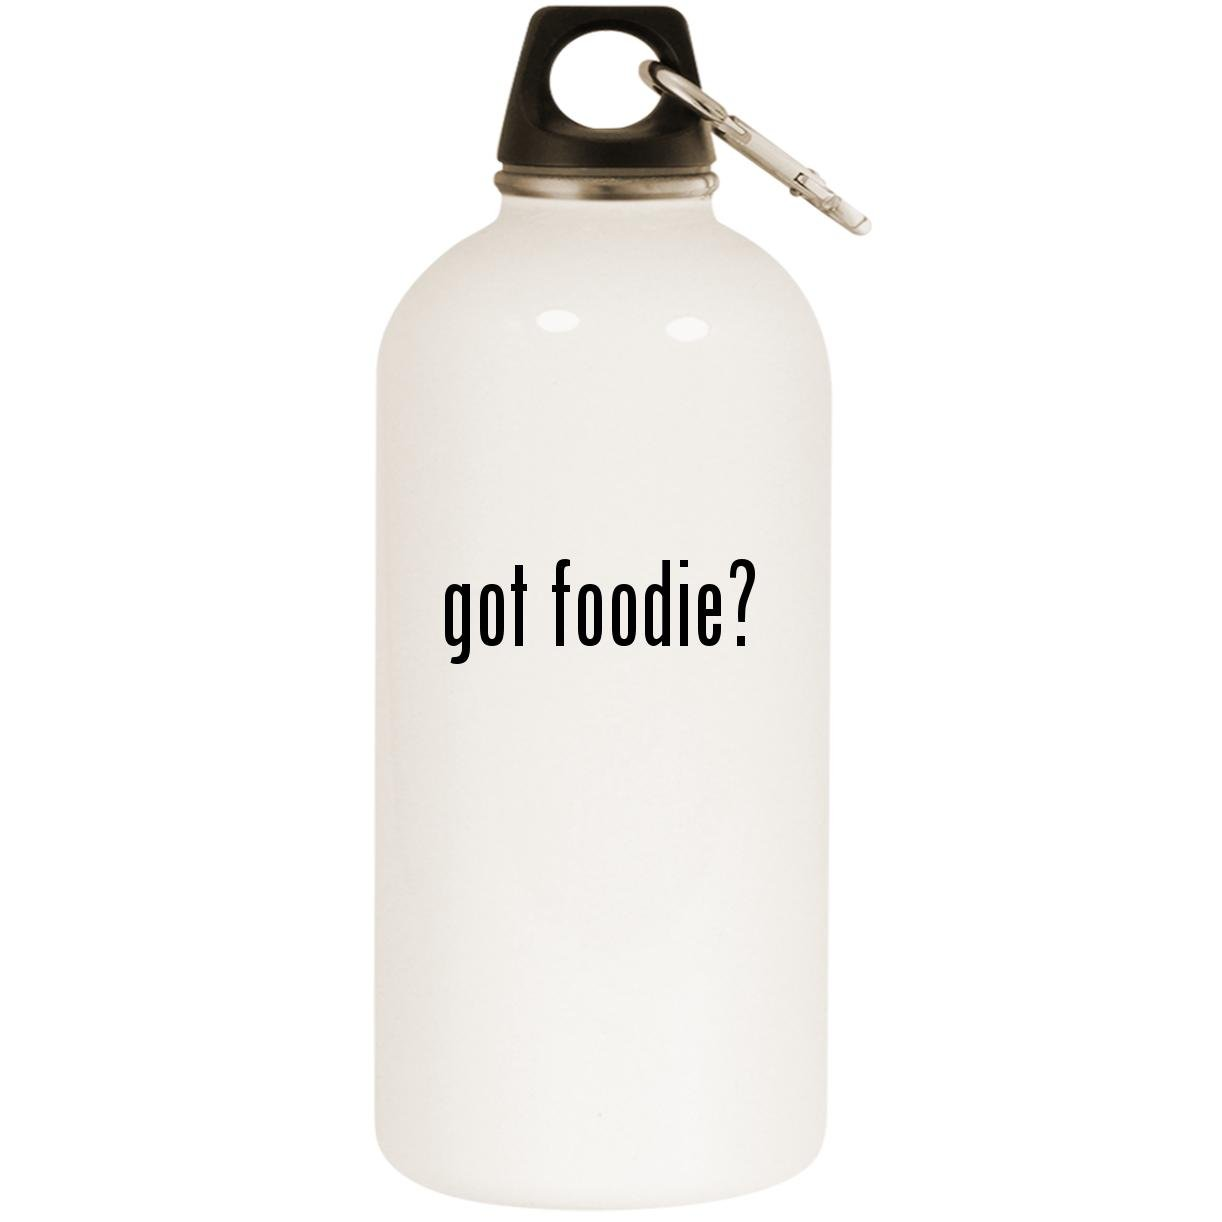 got foodie? - White 20oz Stainless Steel Water Bottle with Carabiner